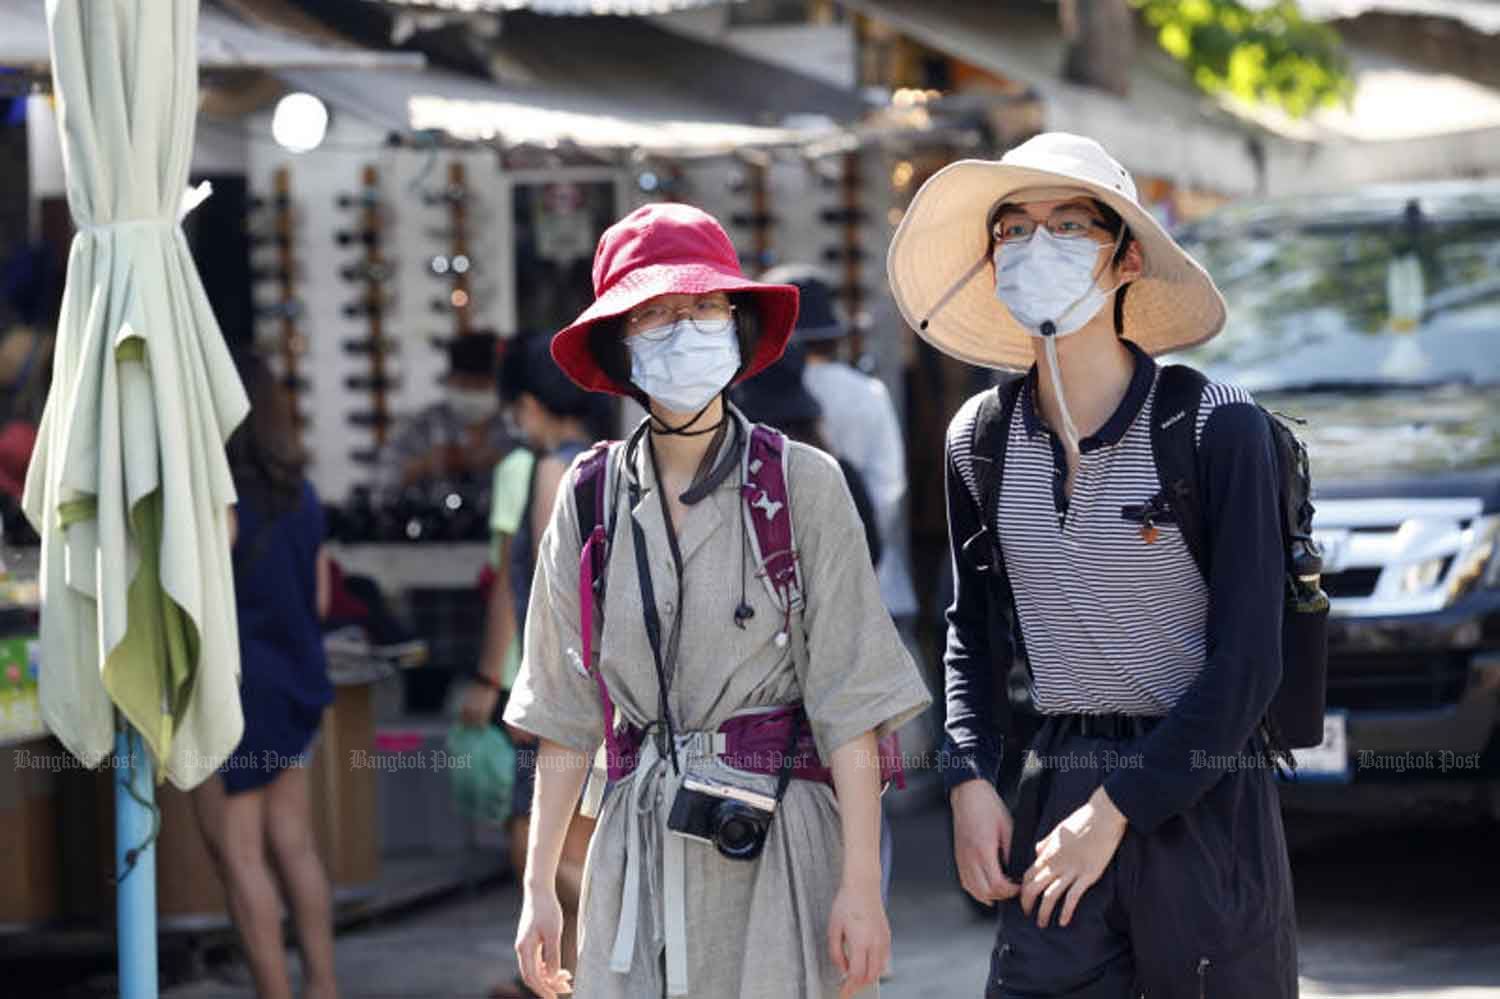 Foreign tourists wear face masks to protect themselves from coronavirus or Covid-19 as they take a walk around Bangkok's Chatuchak weekend market last Saturday. Thailand's economy grew at its weakest pace in five years in 2019, and the epidemic is hurting tourism this year. (Photo by Nutthawat Wicheanbut)